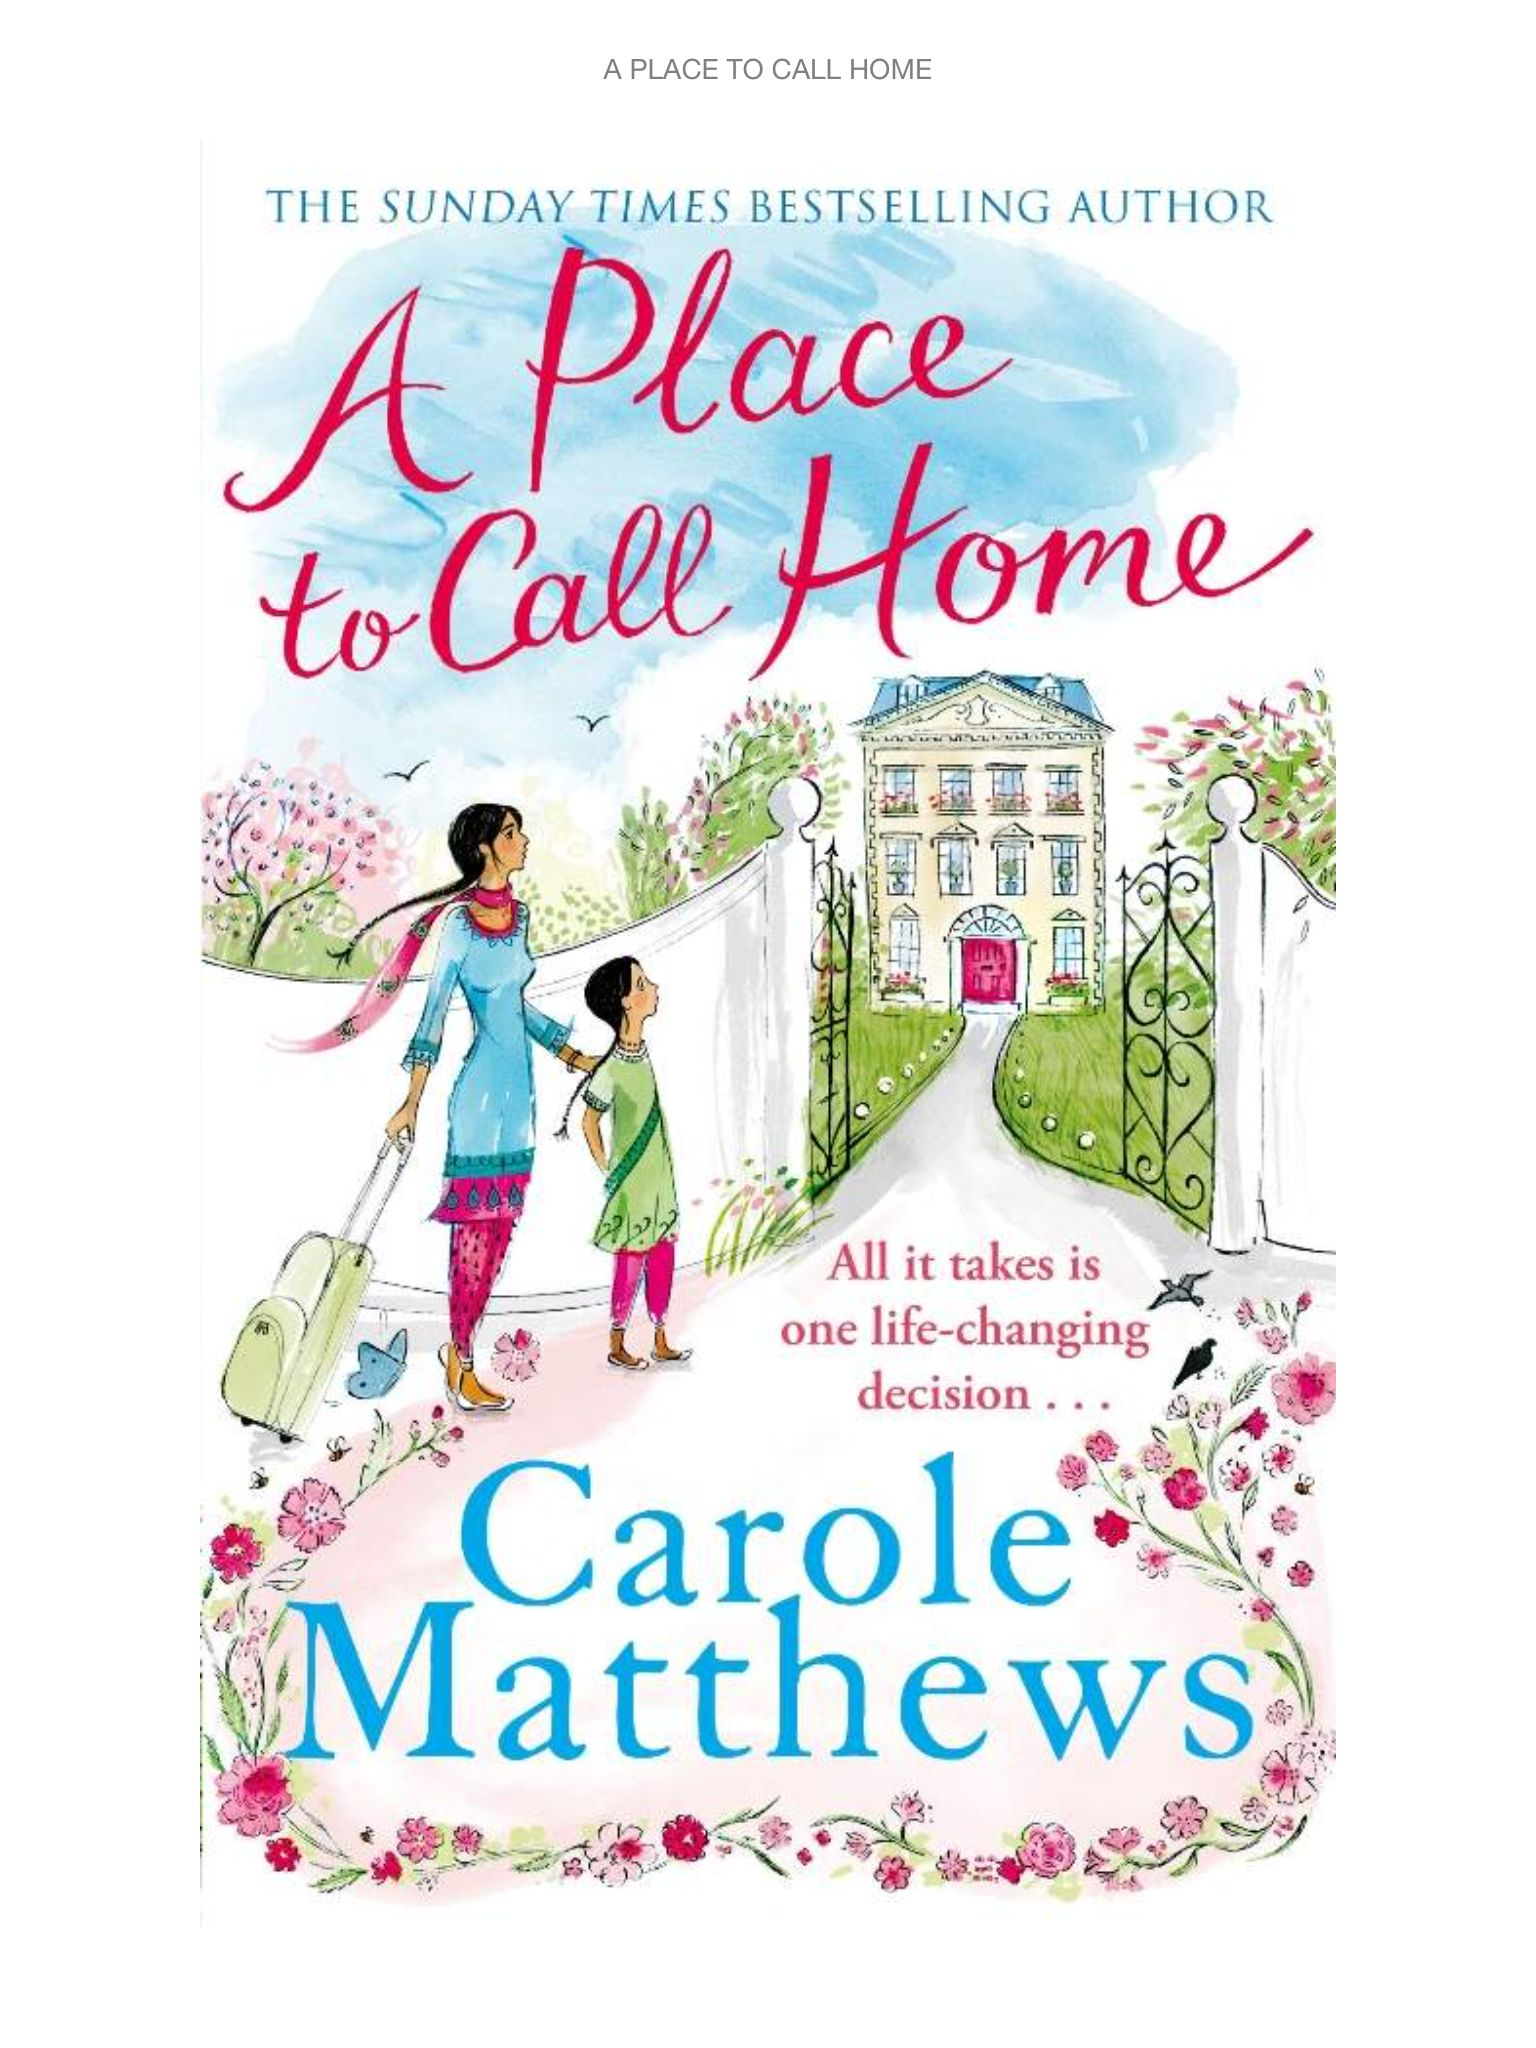 A Place Called Home Carole Matthews Books to read